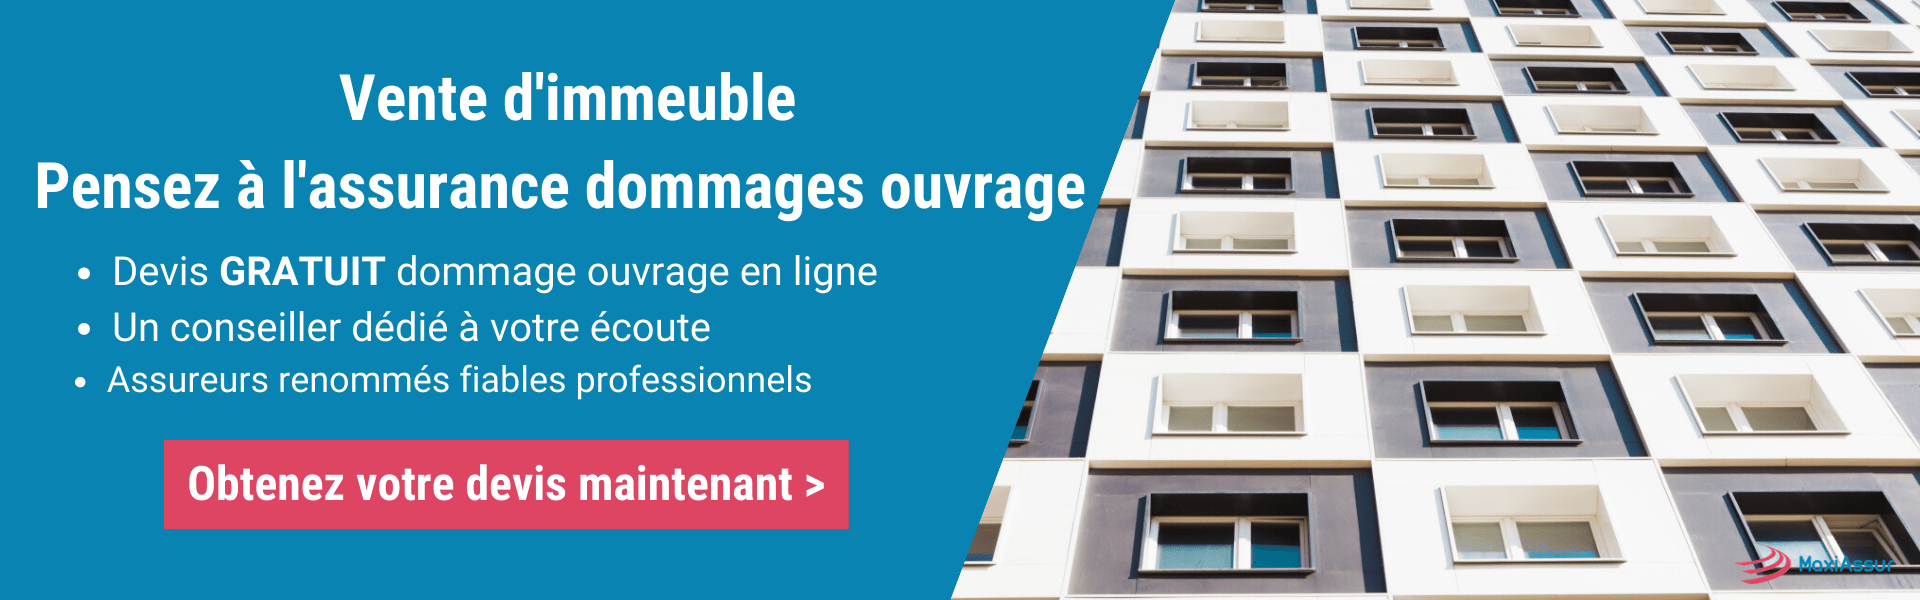 Assurance dommage ouvrage vente immeuble